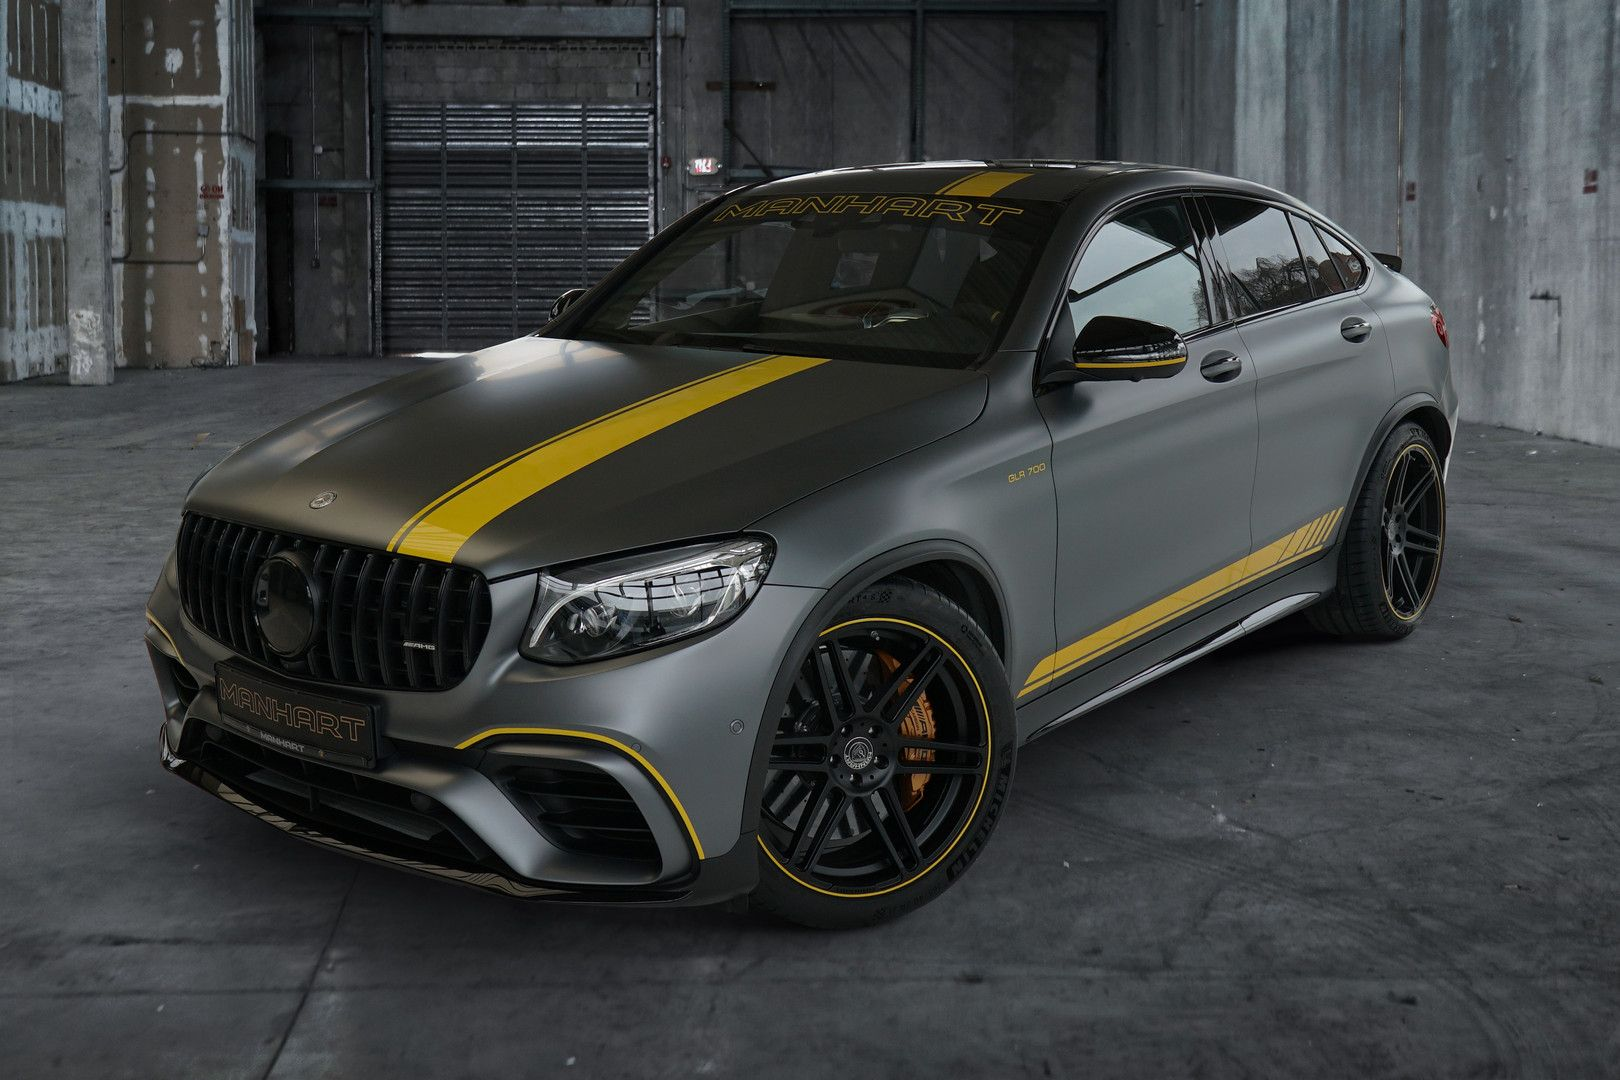 Mercedes Amg Glc 63 S Coupe By Manhart Packs 700 Hp 522 Kw